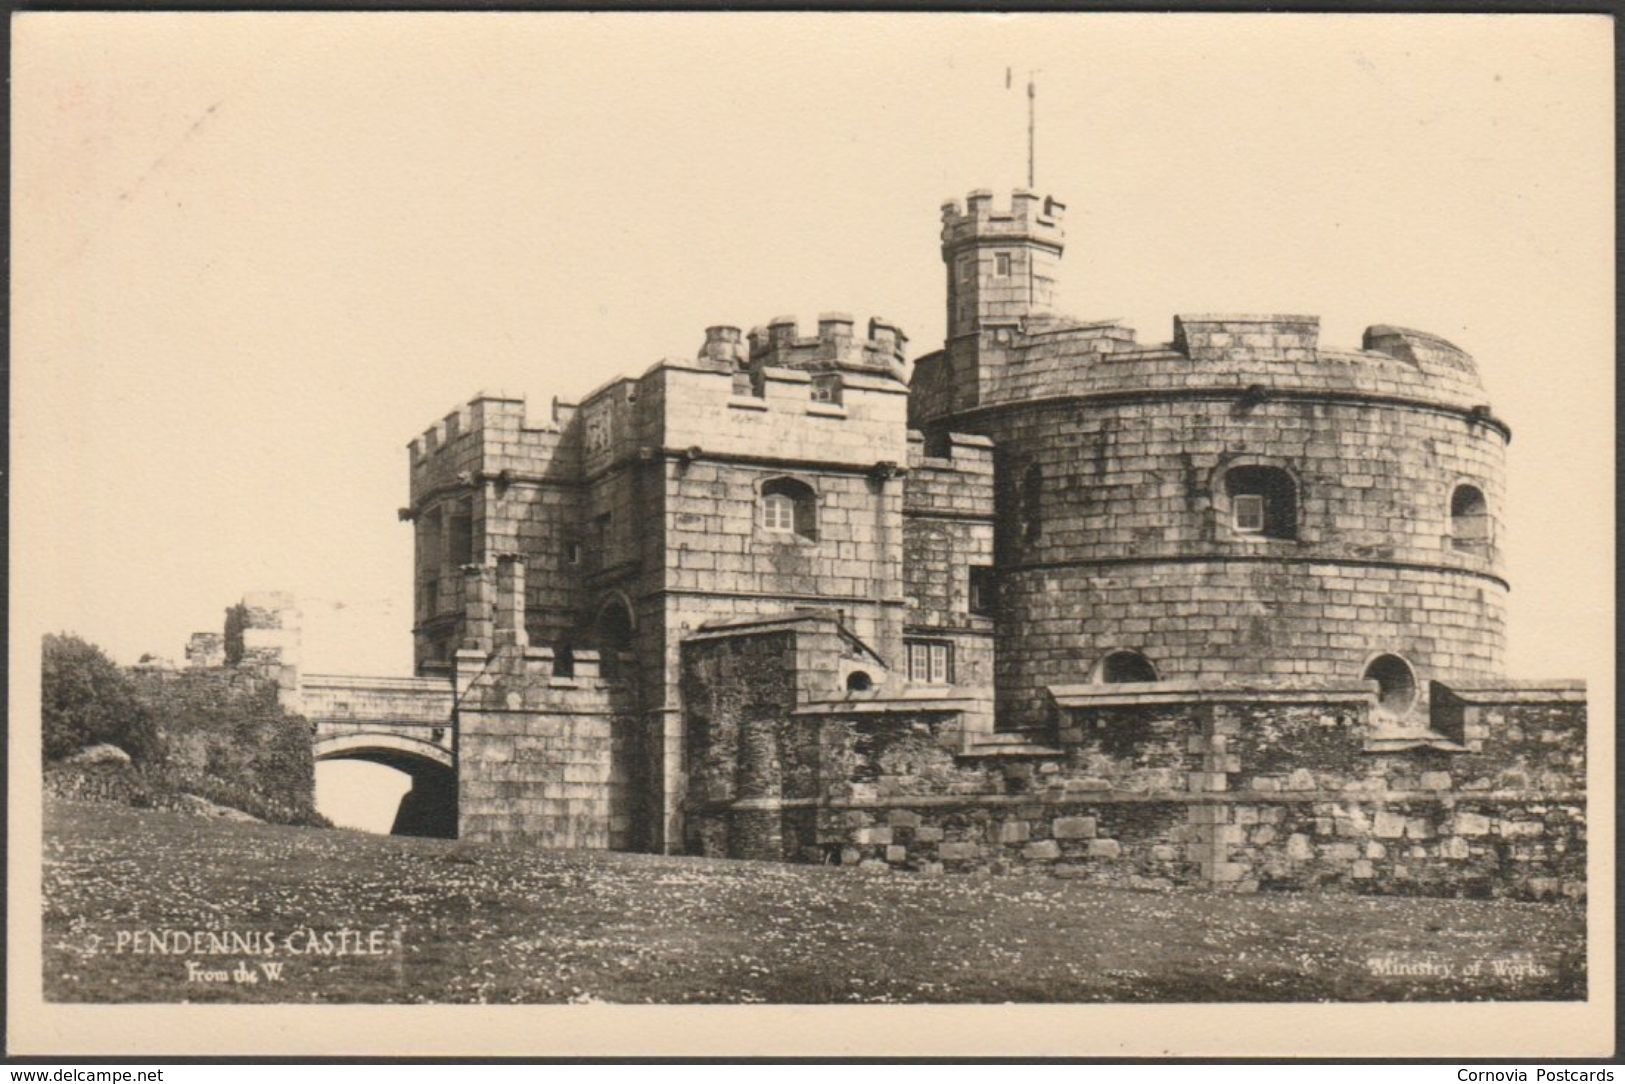 Pendennis Castle from the West, Falmouth, Cornwall, c.1960 - Ministry of Works RP Postcard